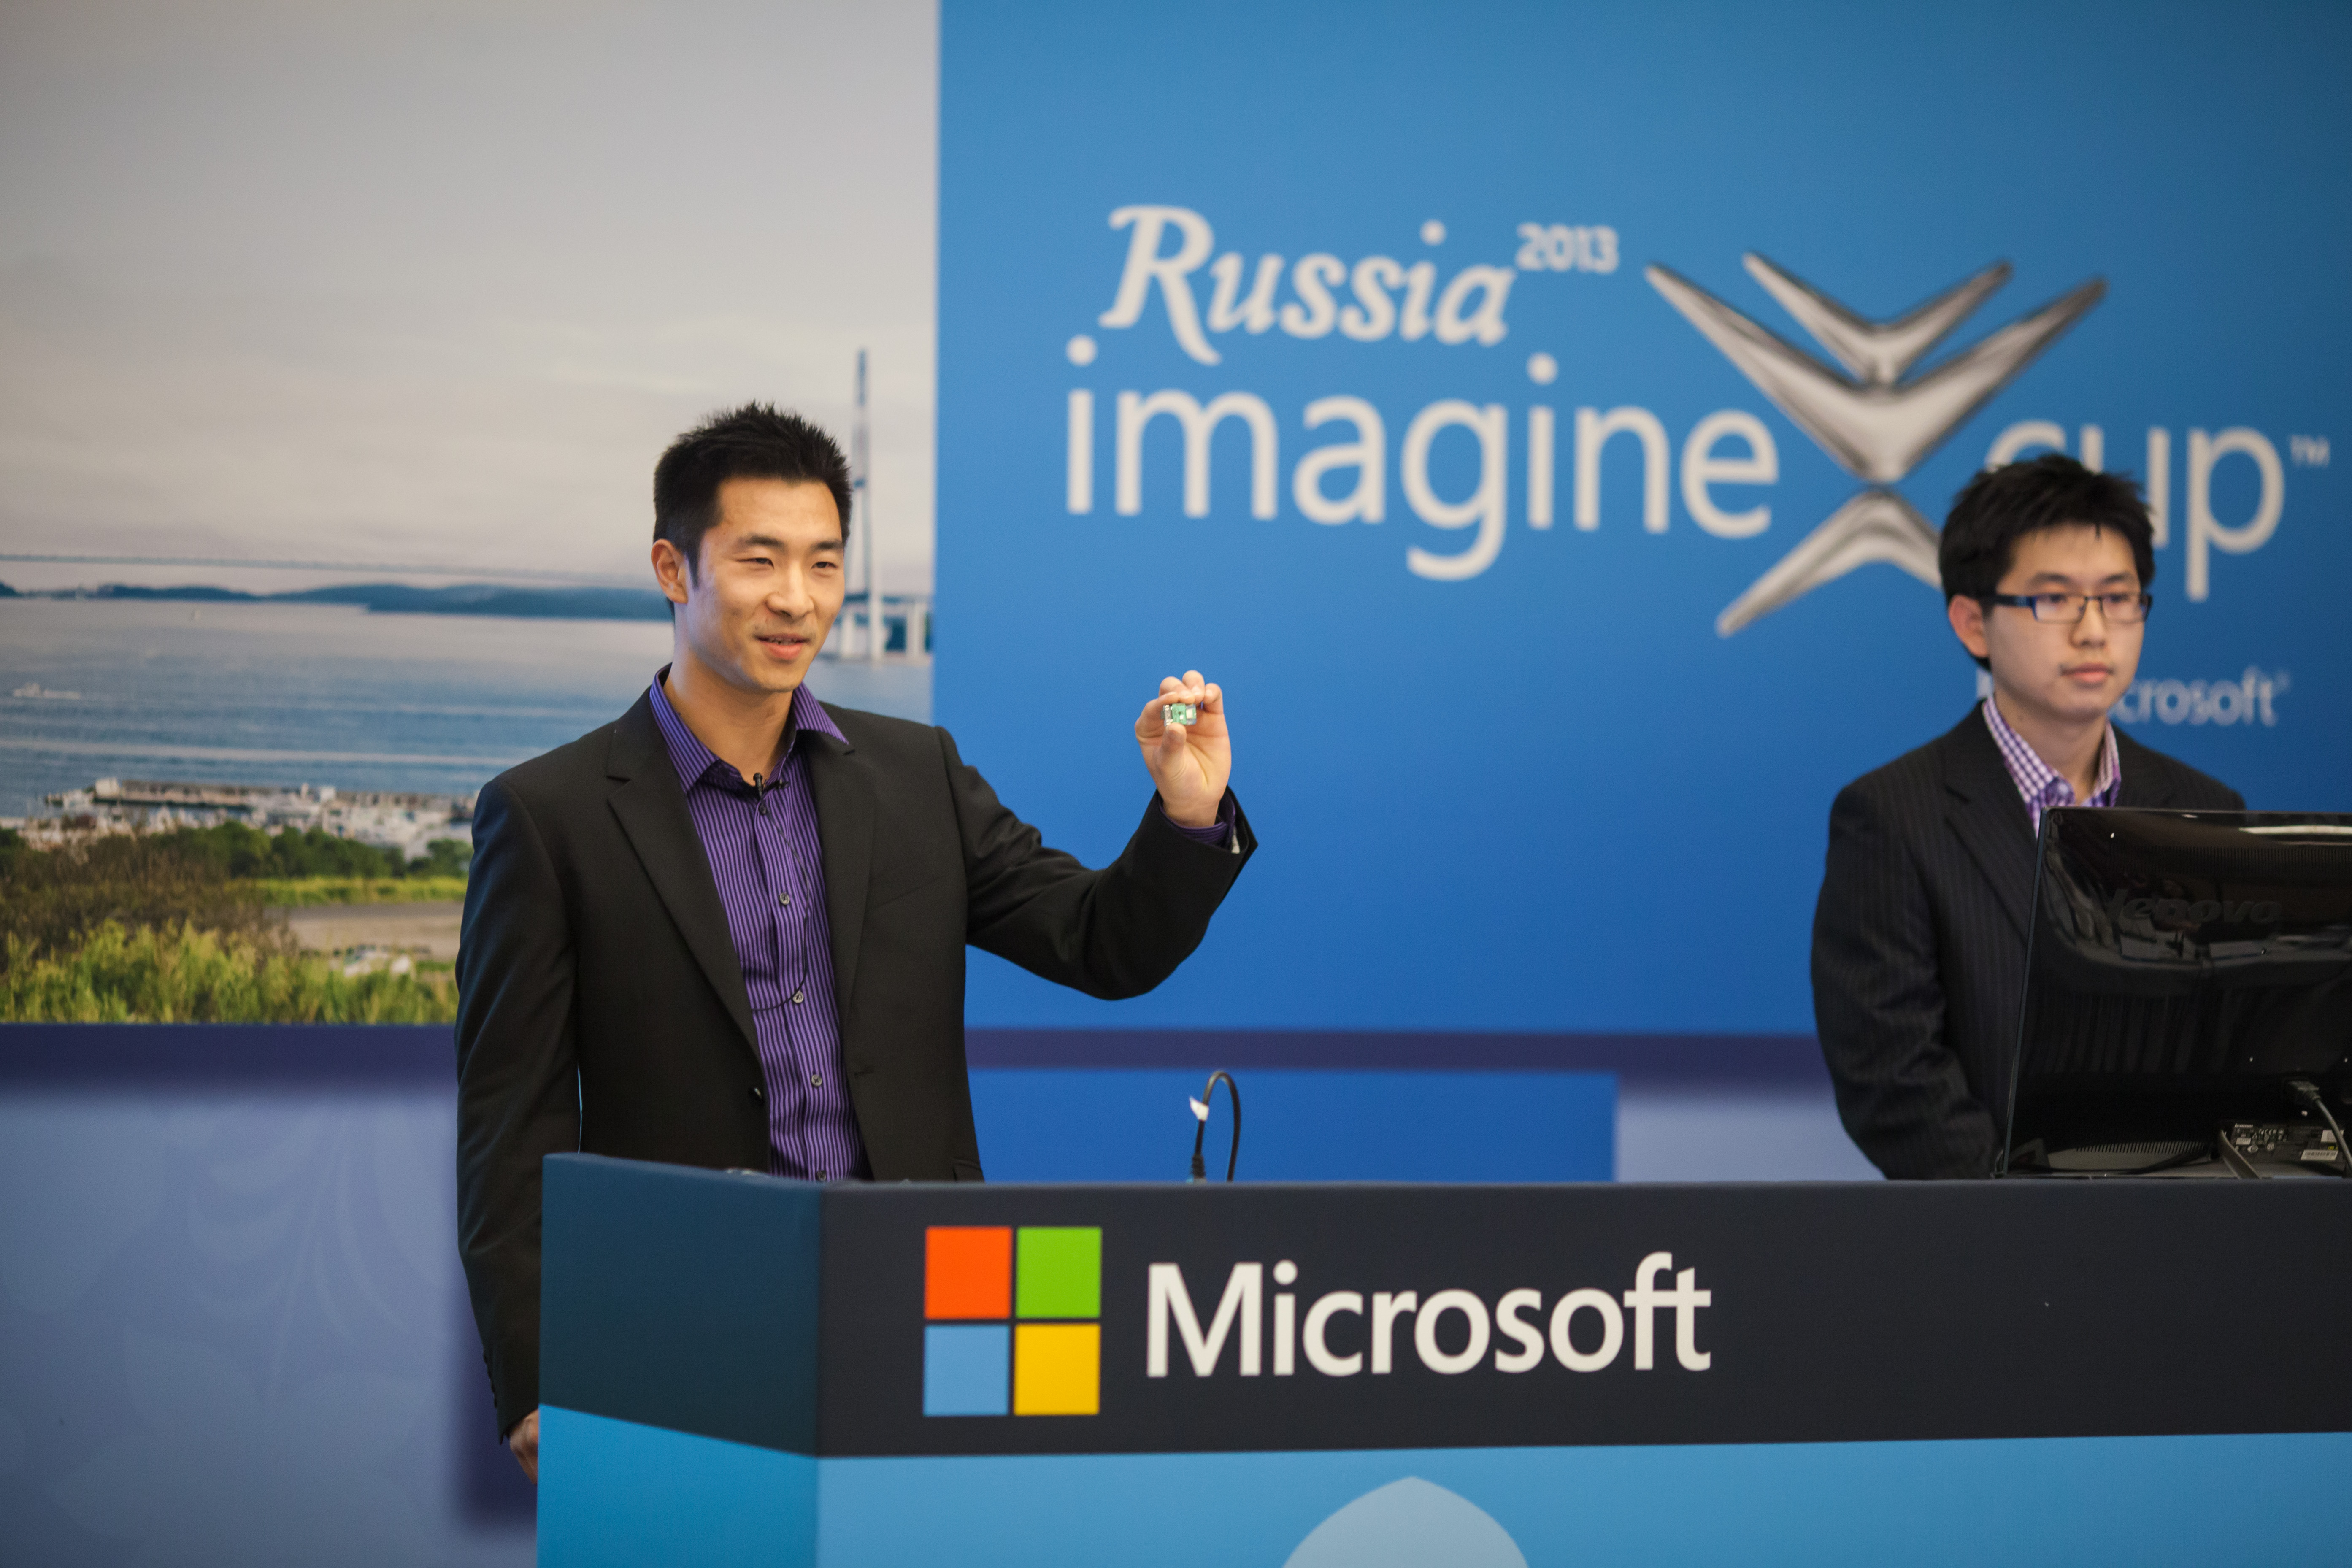 Spark 64 founders, Daniel Xu and Ming Cheuk, at the 2013 Microsoft Imagine Cup.